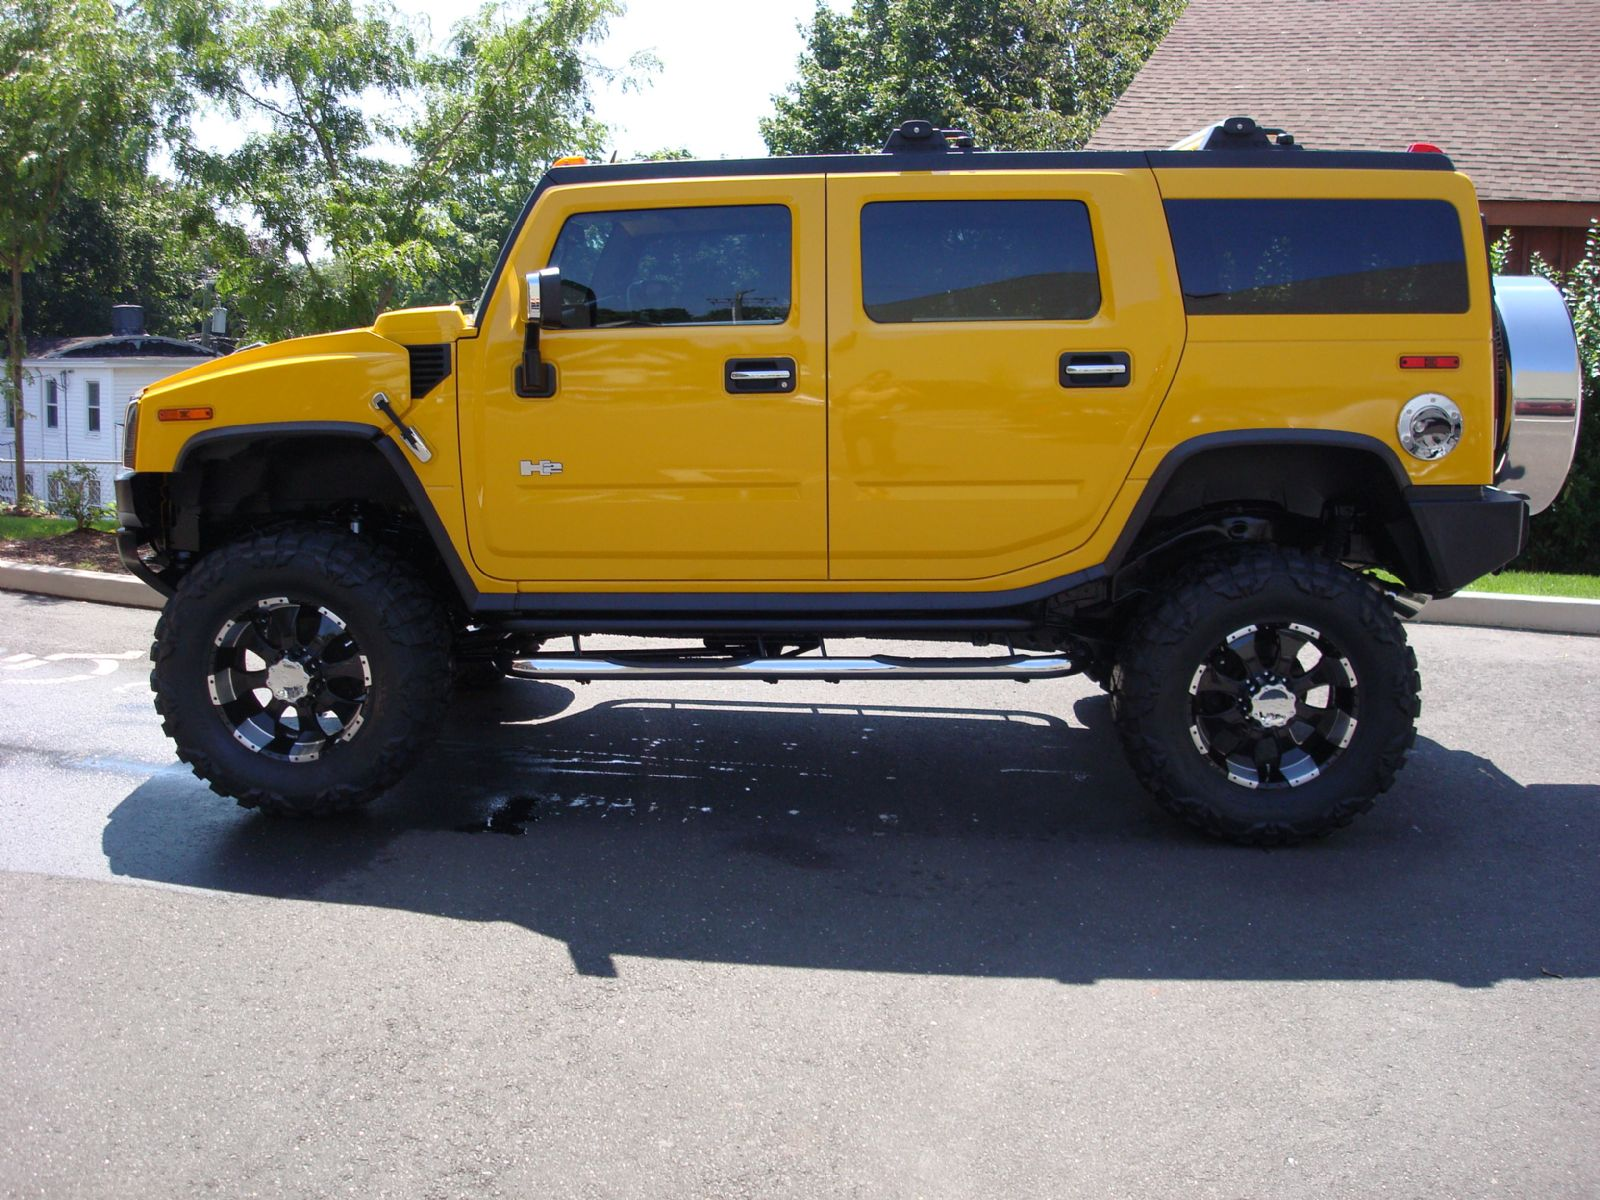 hummer for sale images start 100 WeiLi Automotive Network